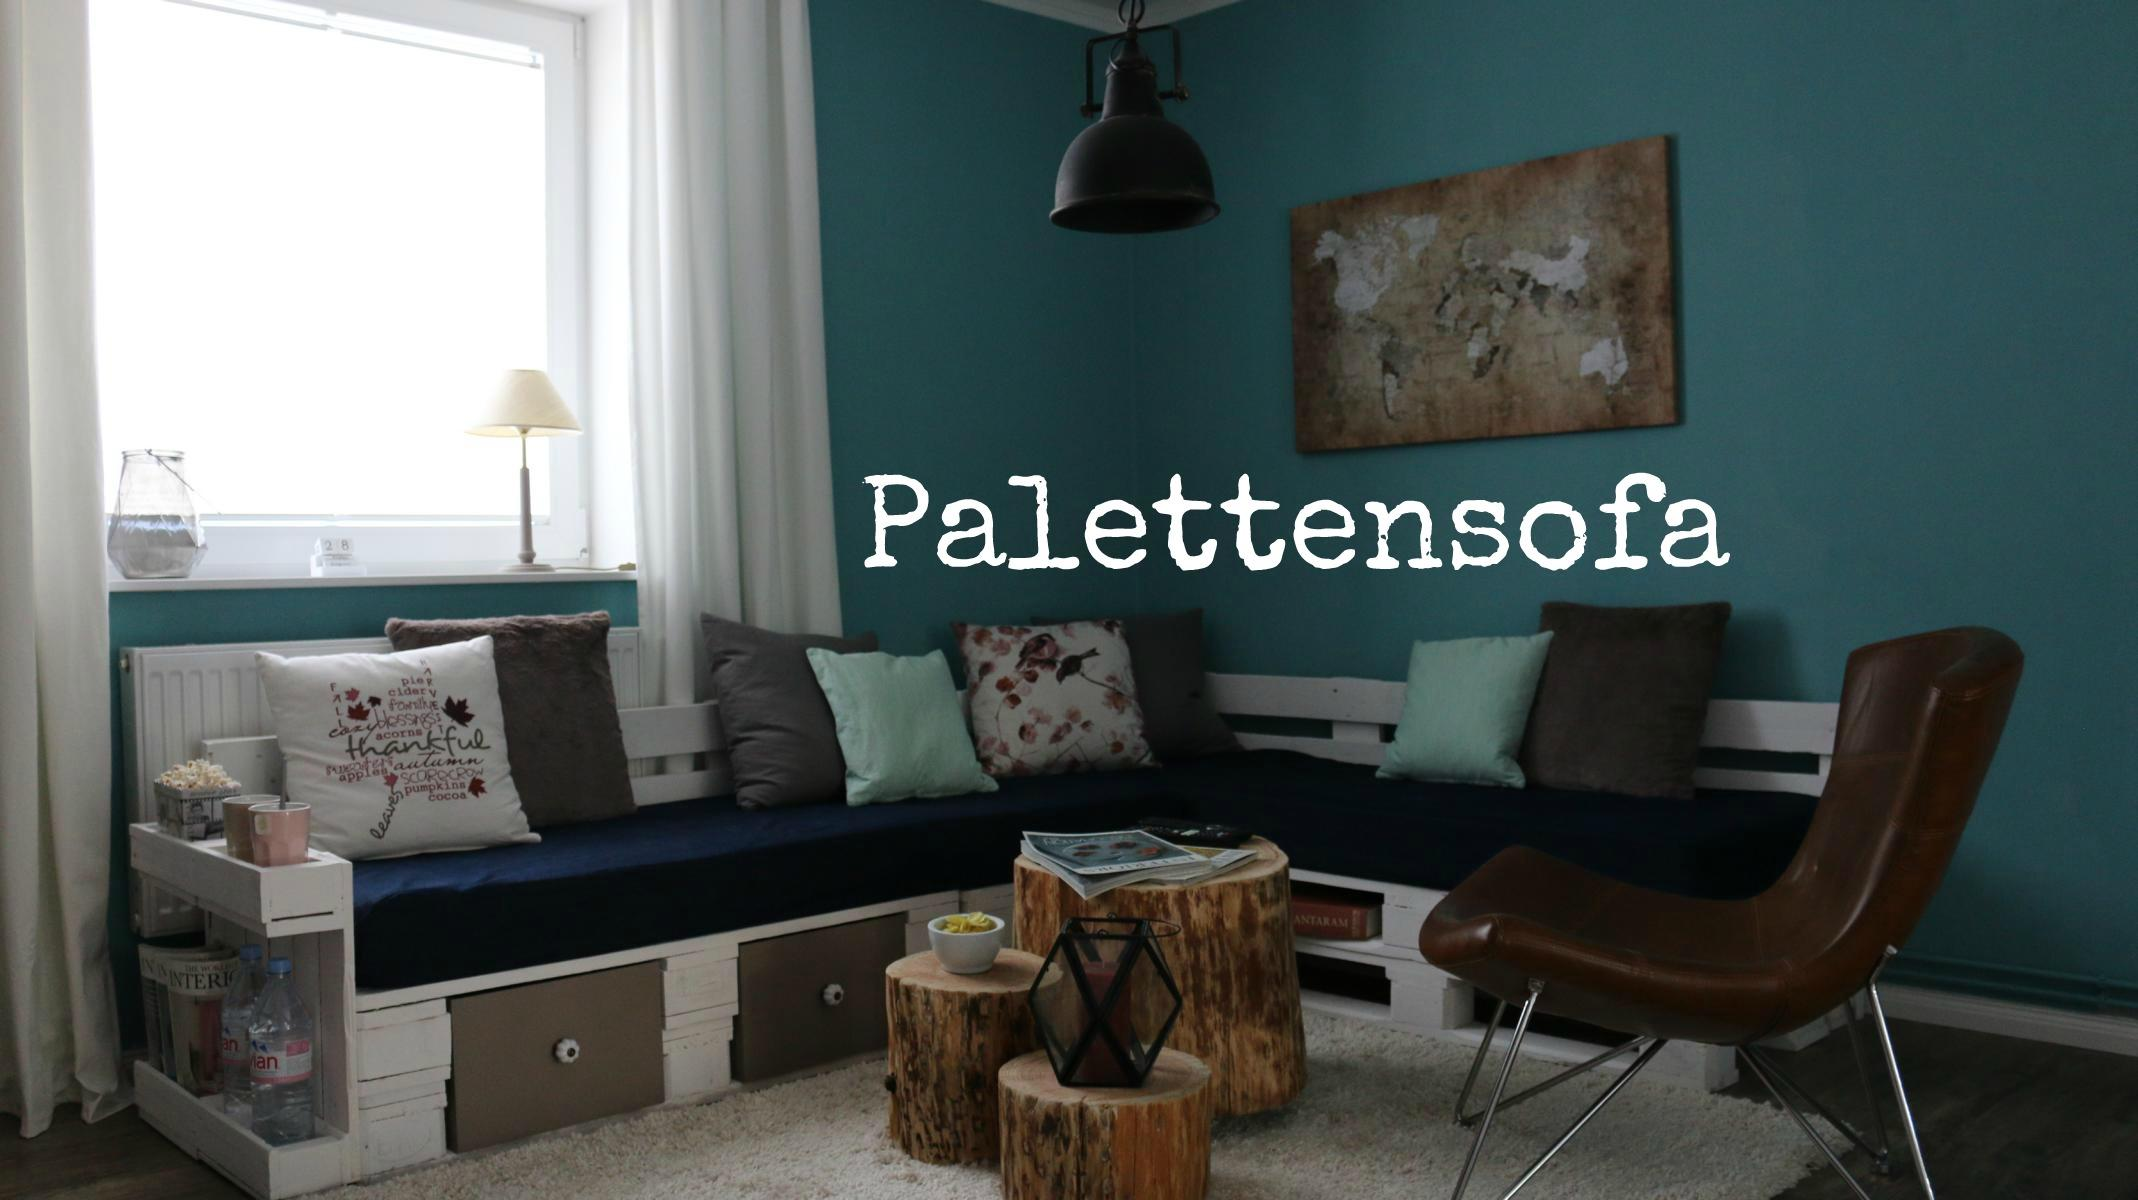 palettensofa sofa aus paletten anleitungen ideen. Black Bedroom Furniture Sets. Home Design Ideas